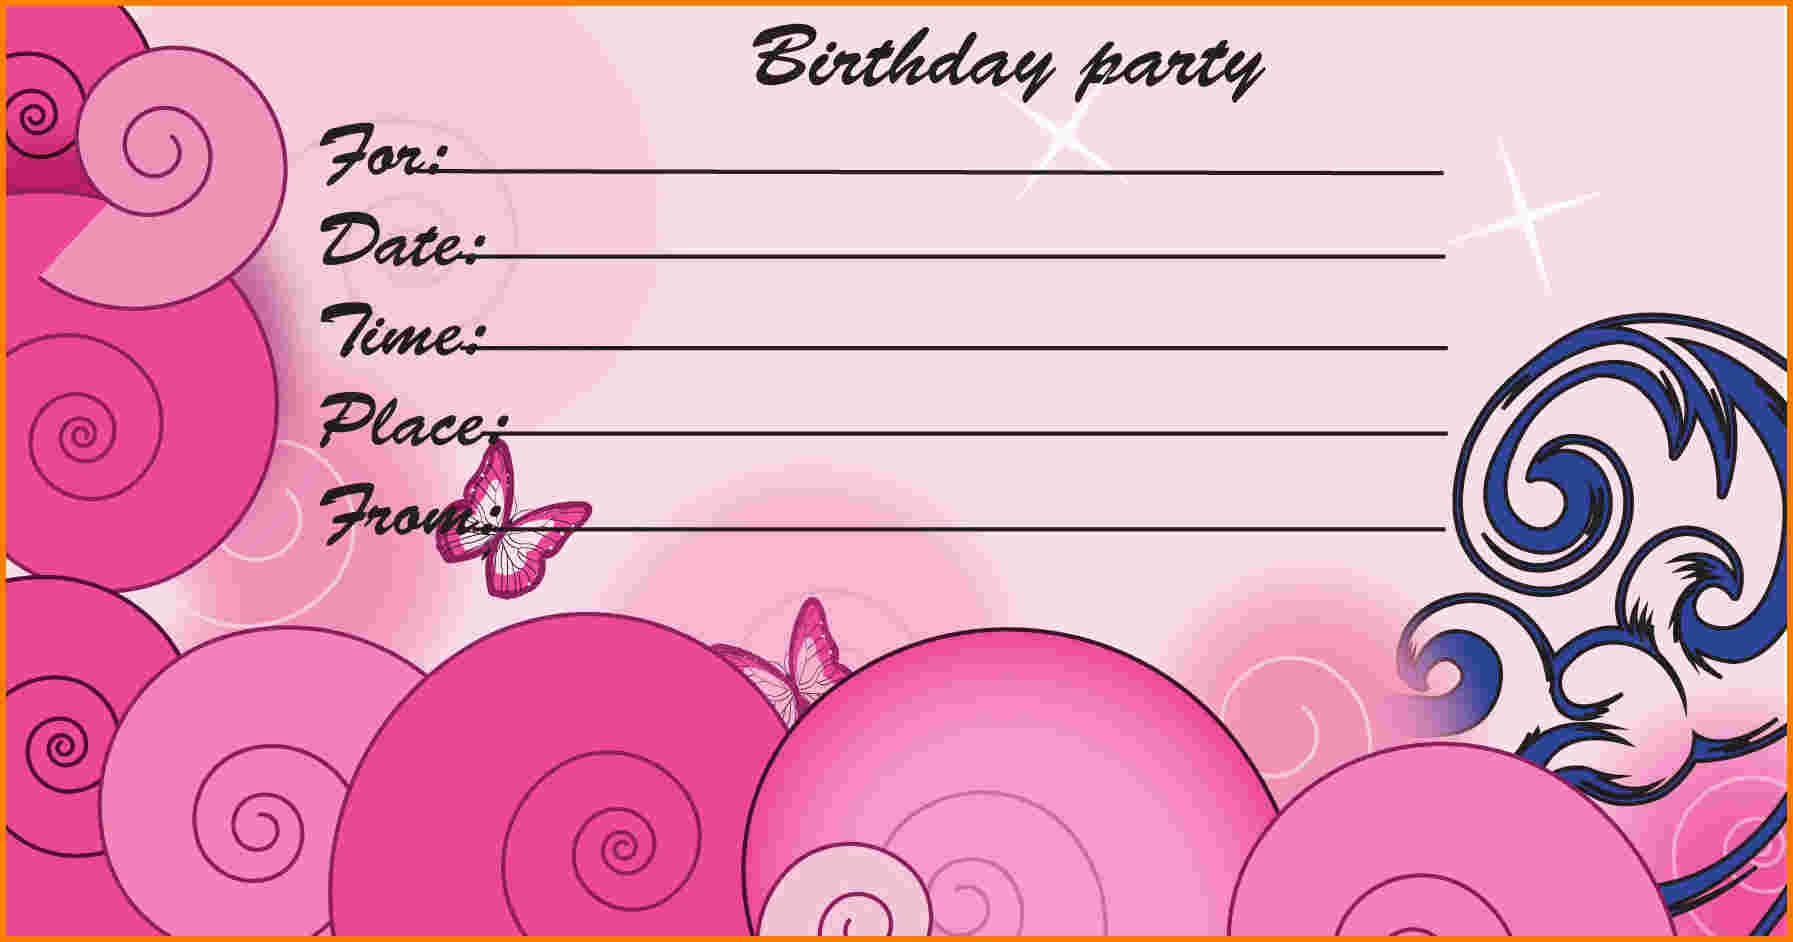 birthday invitation print out ; free-printable-birthday-invitation-templates-birthday-invitations-free-printable-birthday-invitation-template-with-pink-color-birthday-party-invitation-cards-and-templates